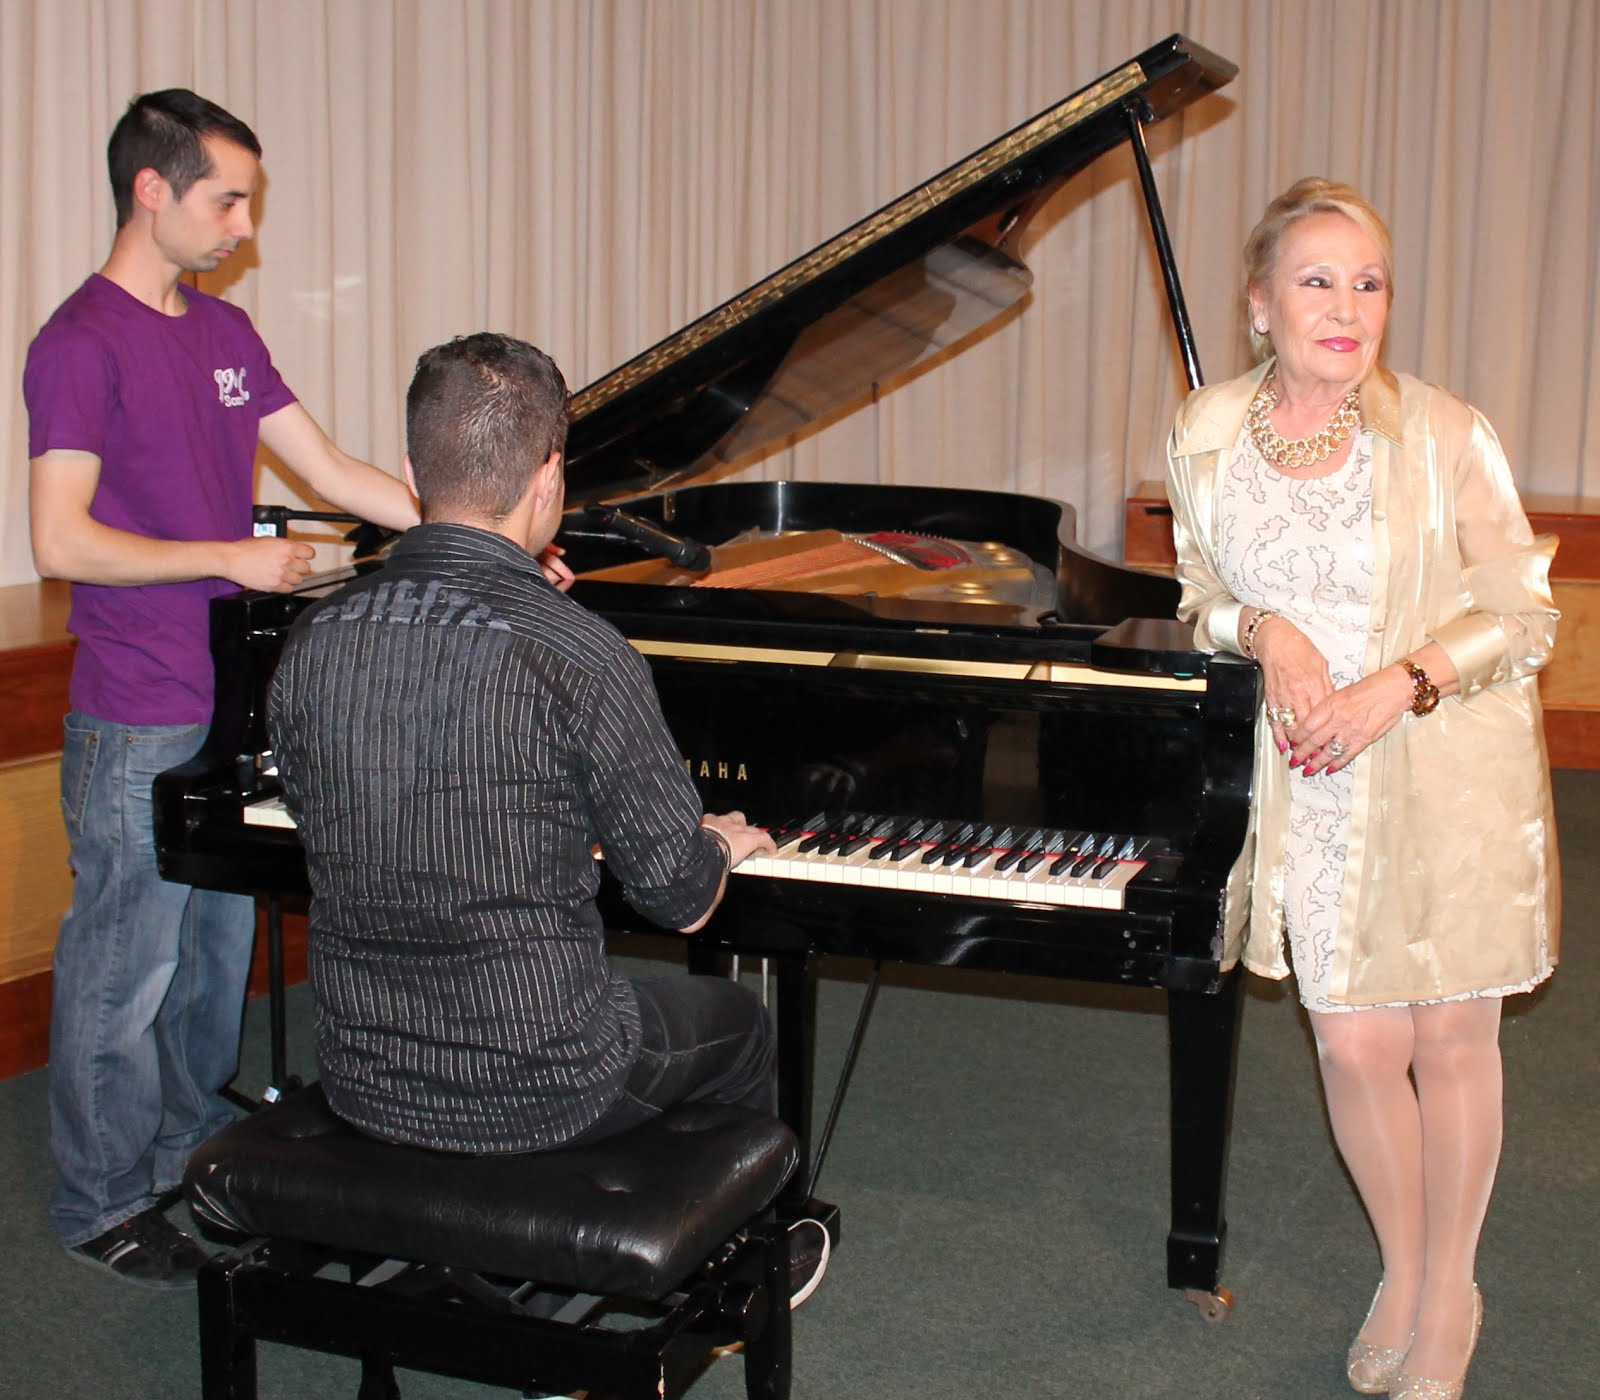 Recital en la Universidad de Murcia